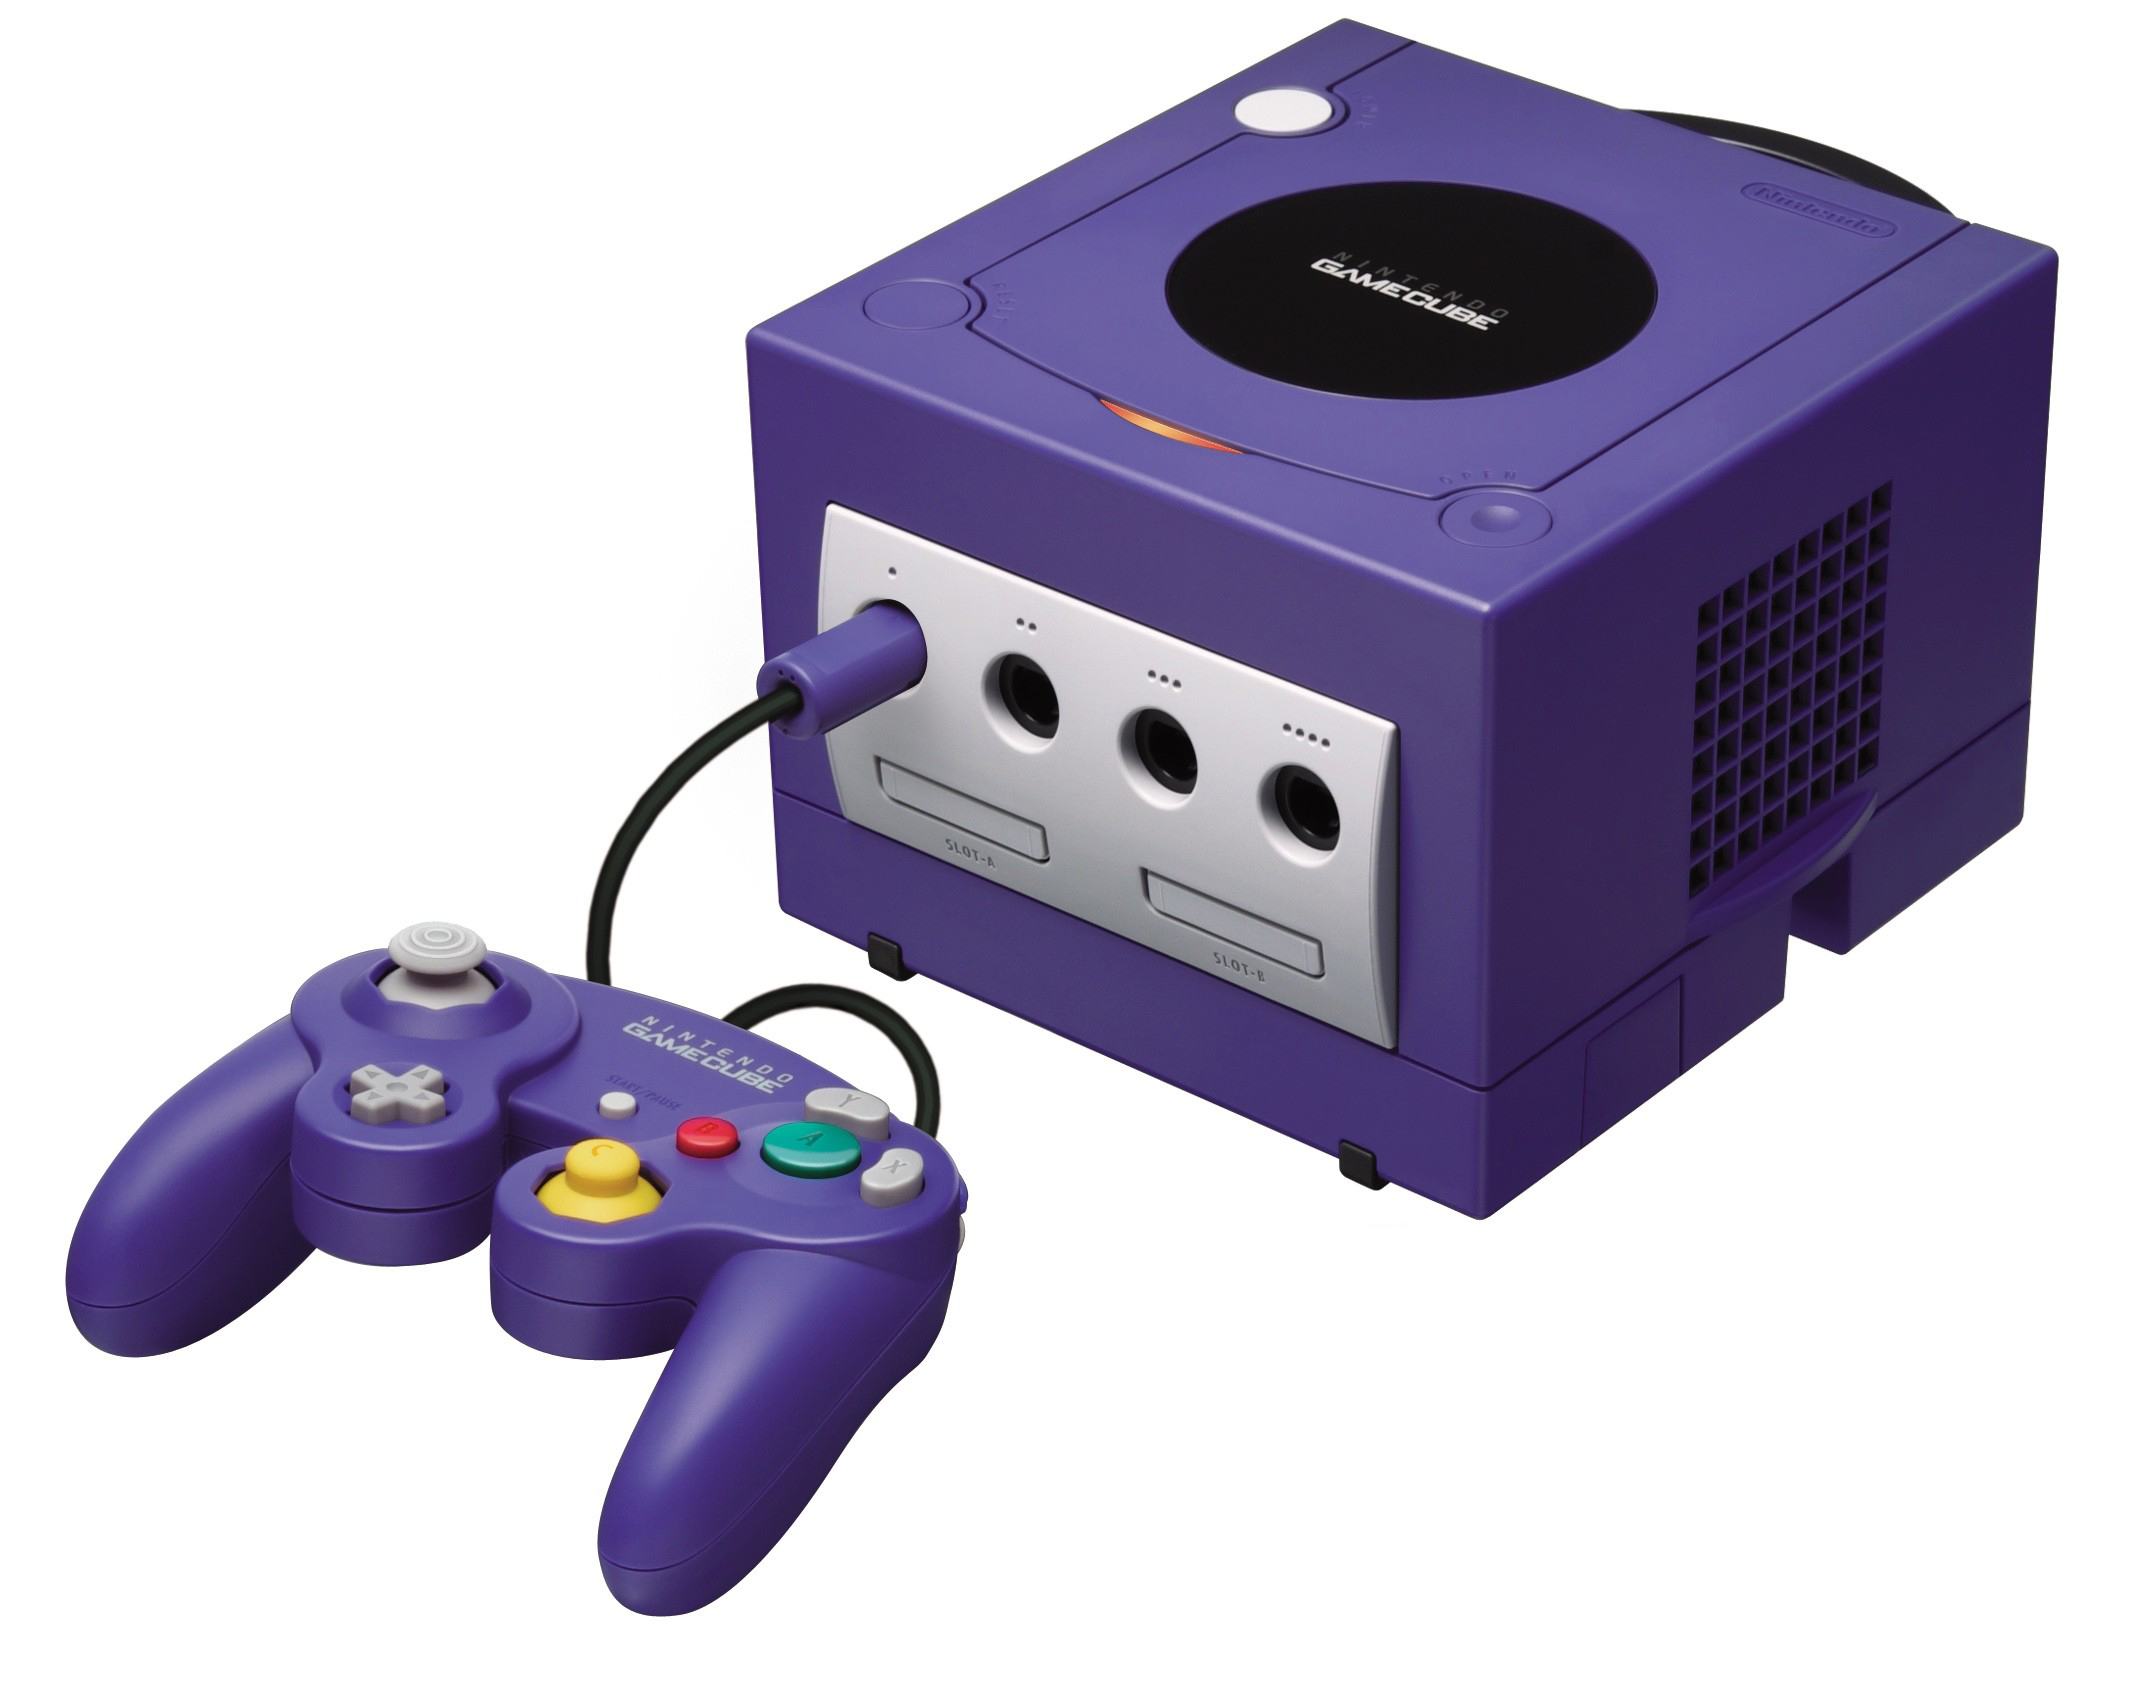 http://www.the-games-blog.com/wp-content/uploads/2010/02/gamecube.jpg